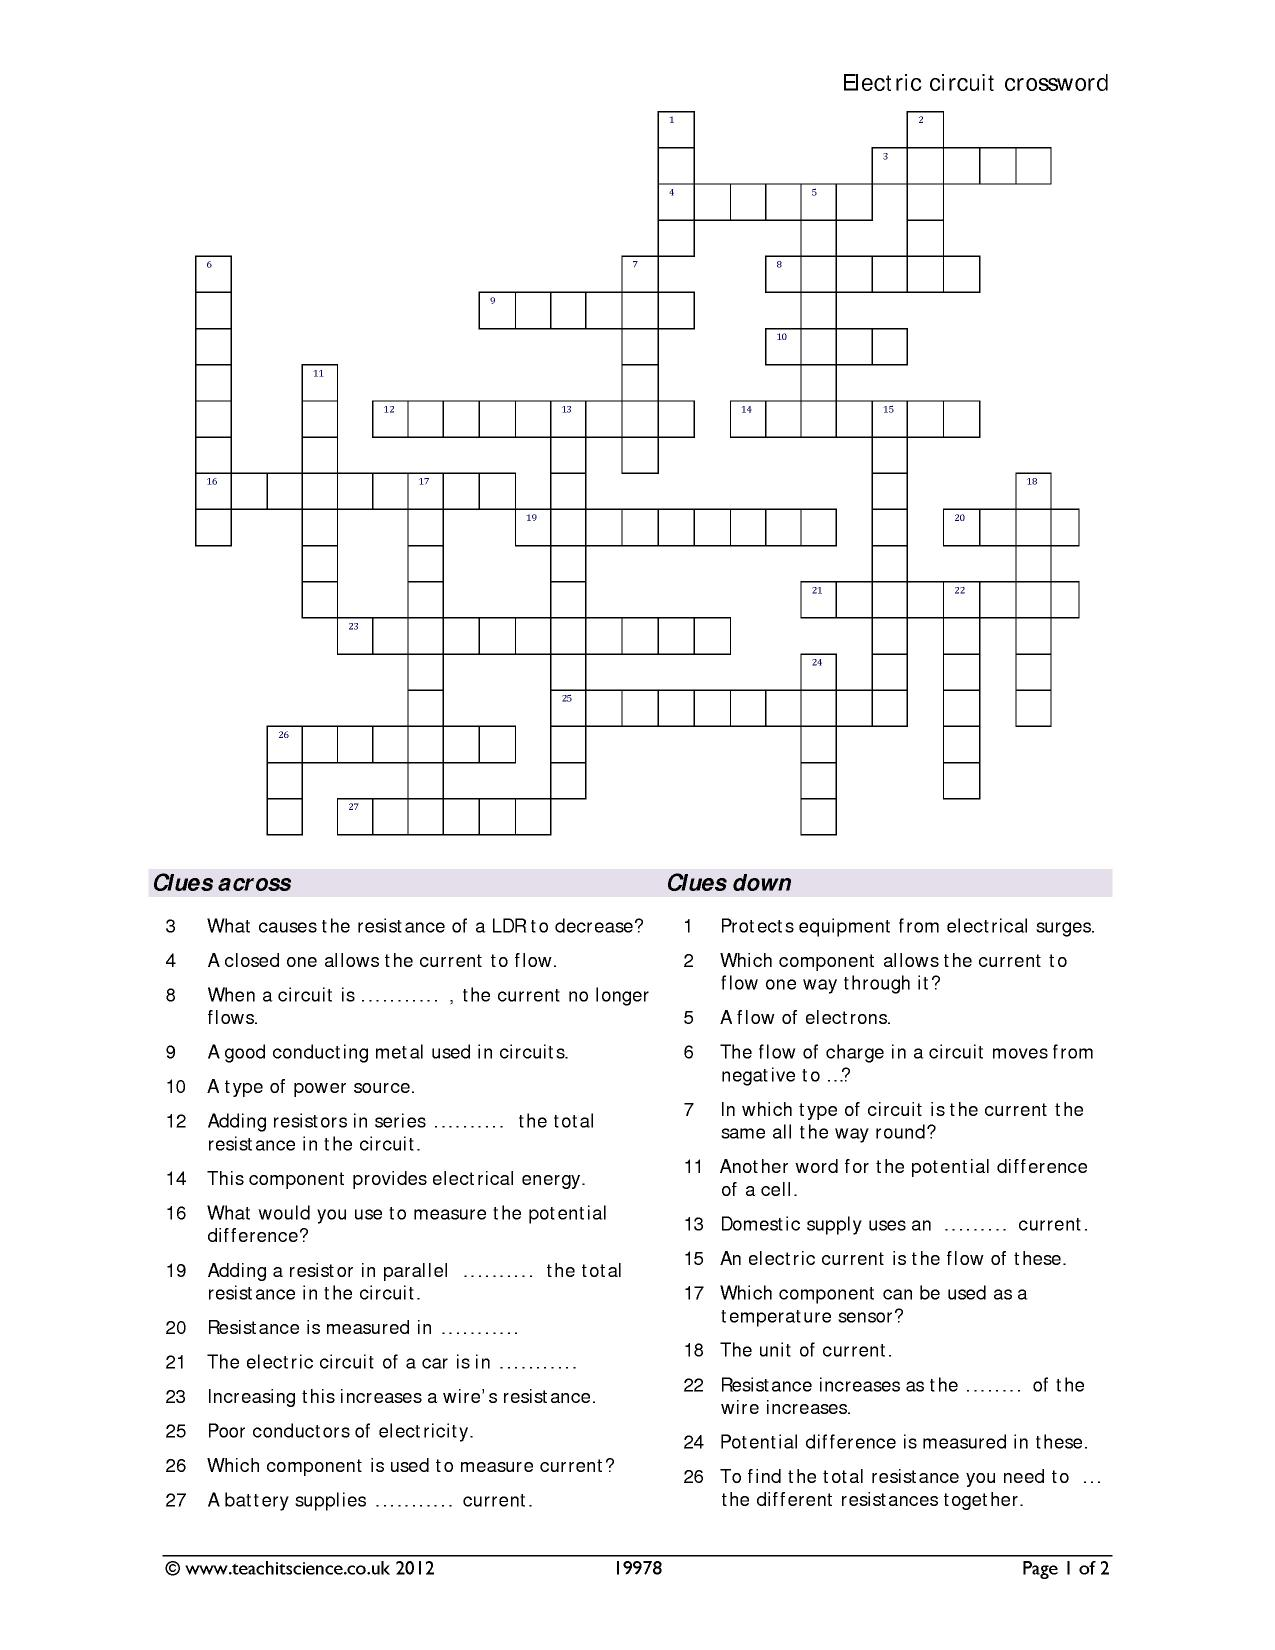 Electric Circuit Crossword